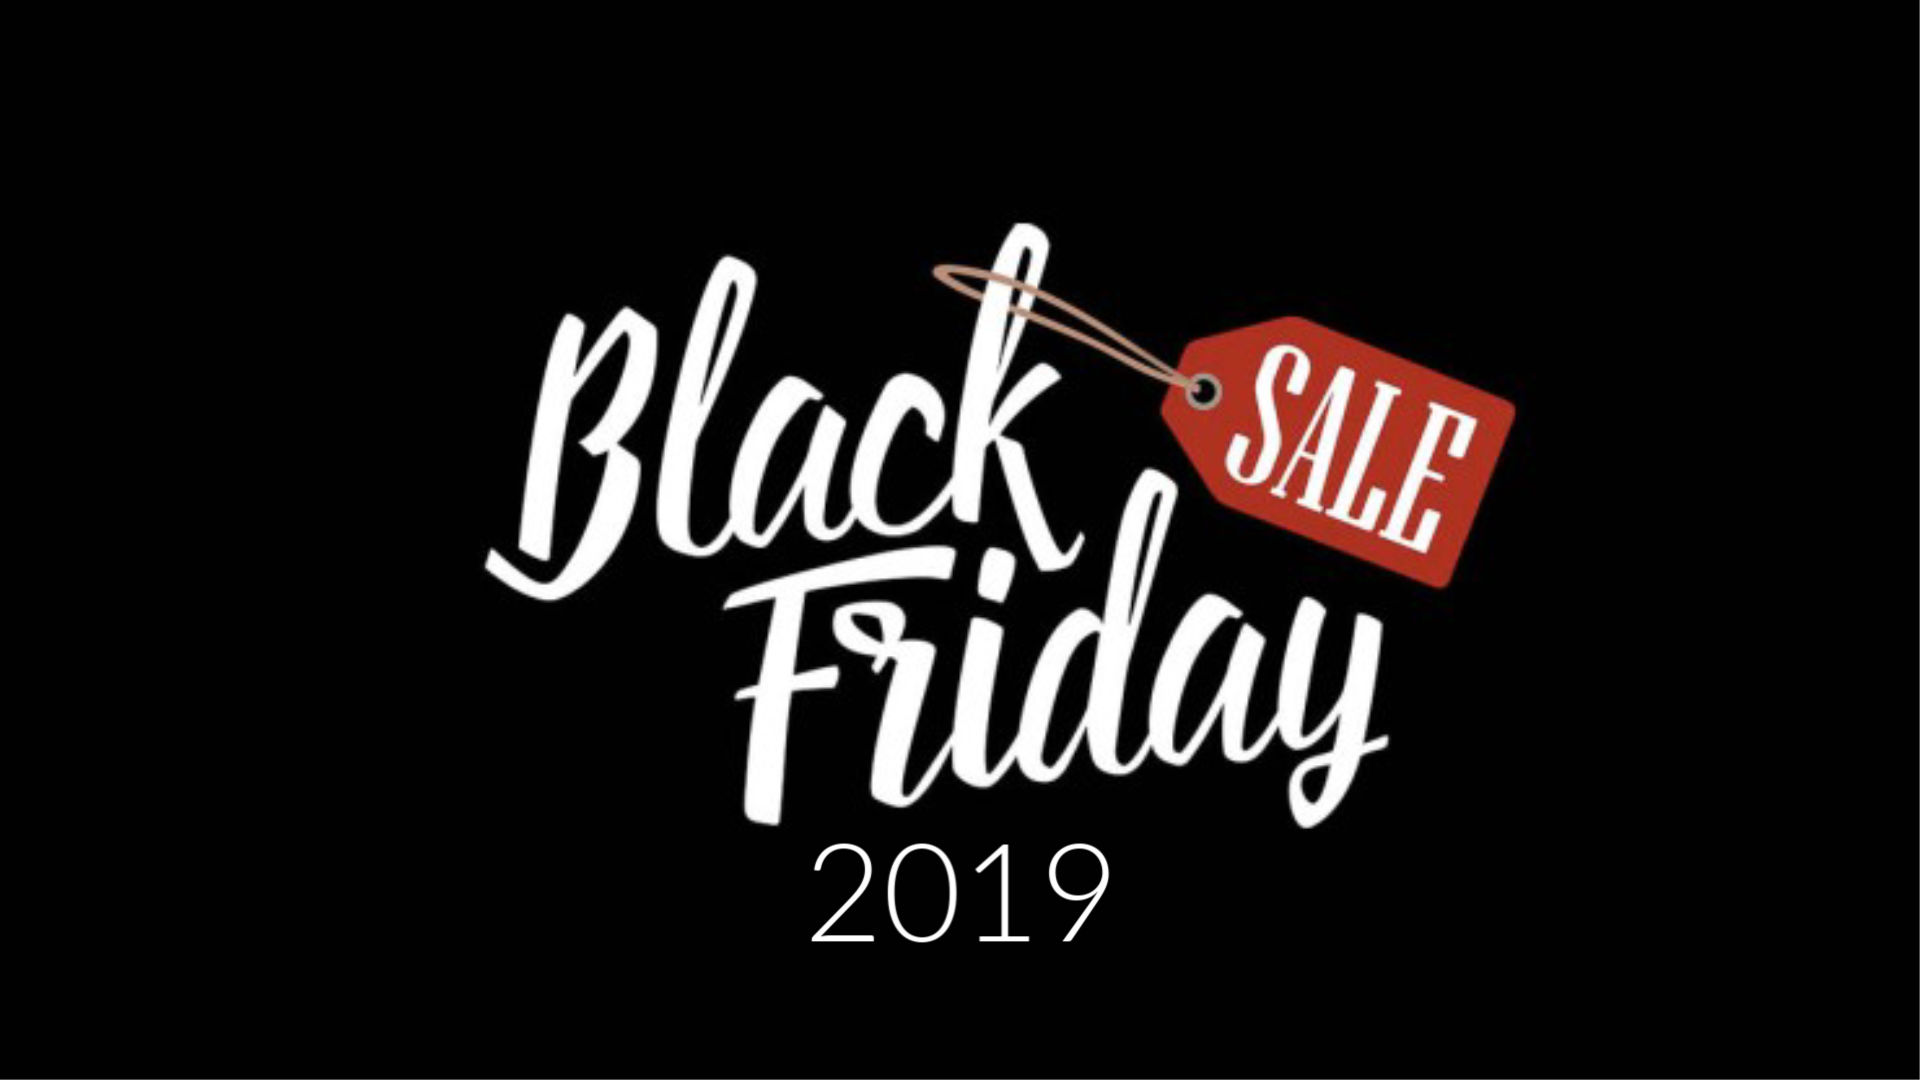 Black Friday sales misscrystalblog